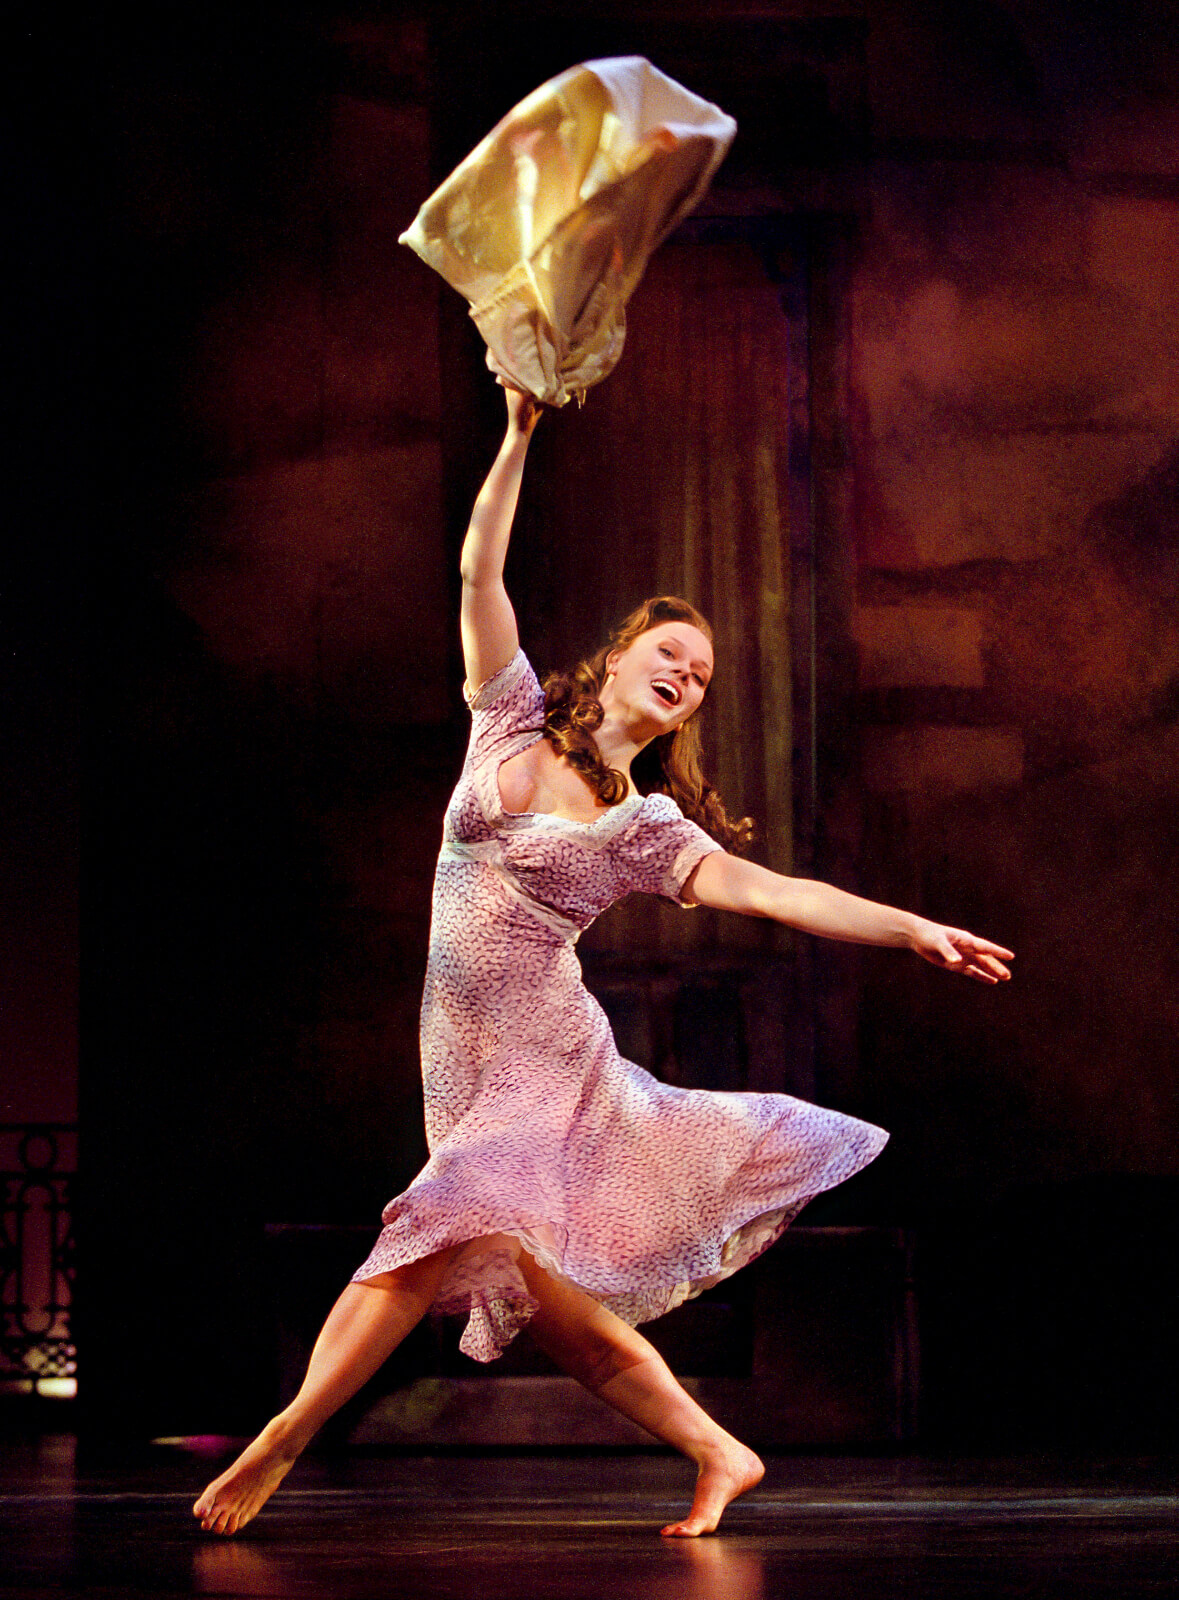 Therese Raquin (Kate Levering) all smiles, swinging her laundry.